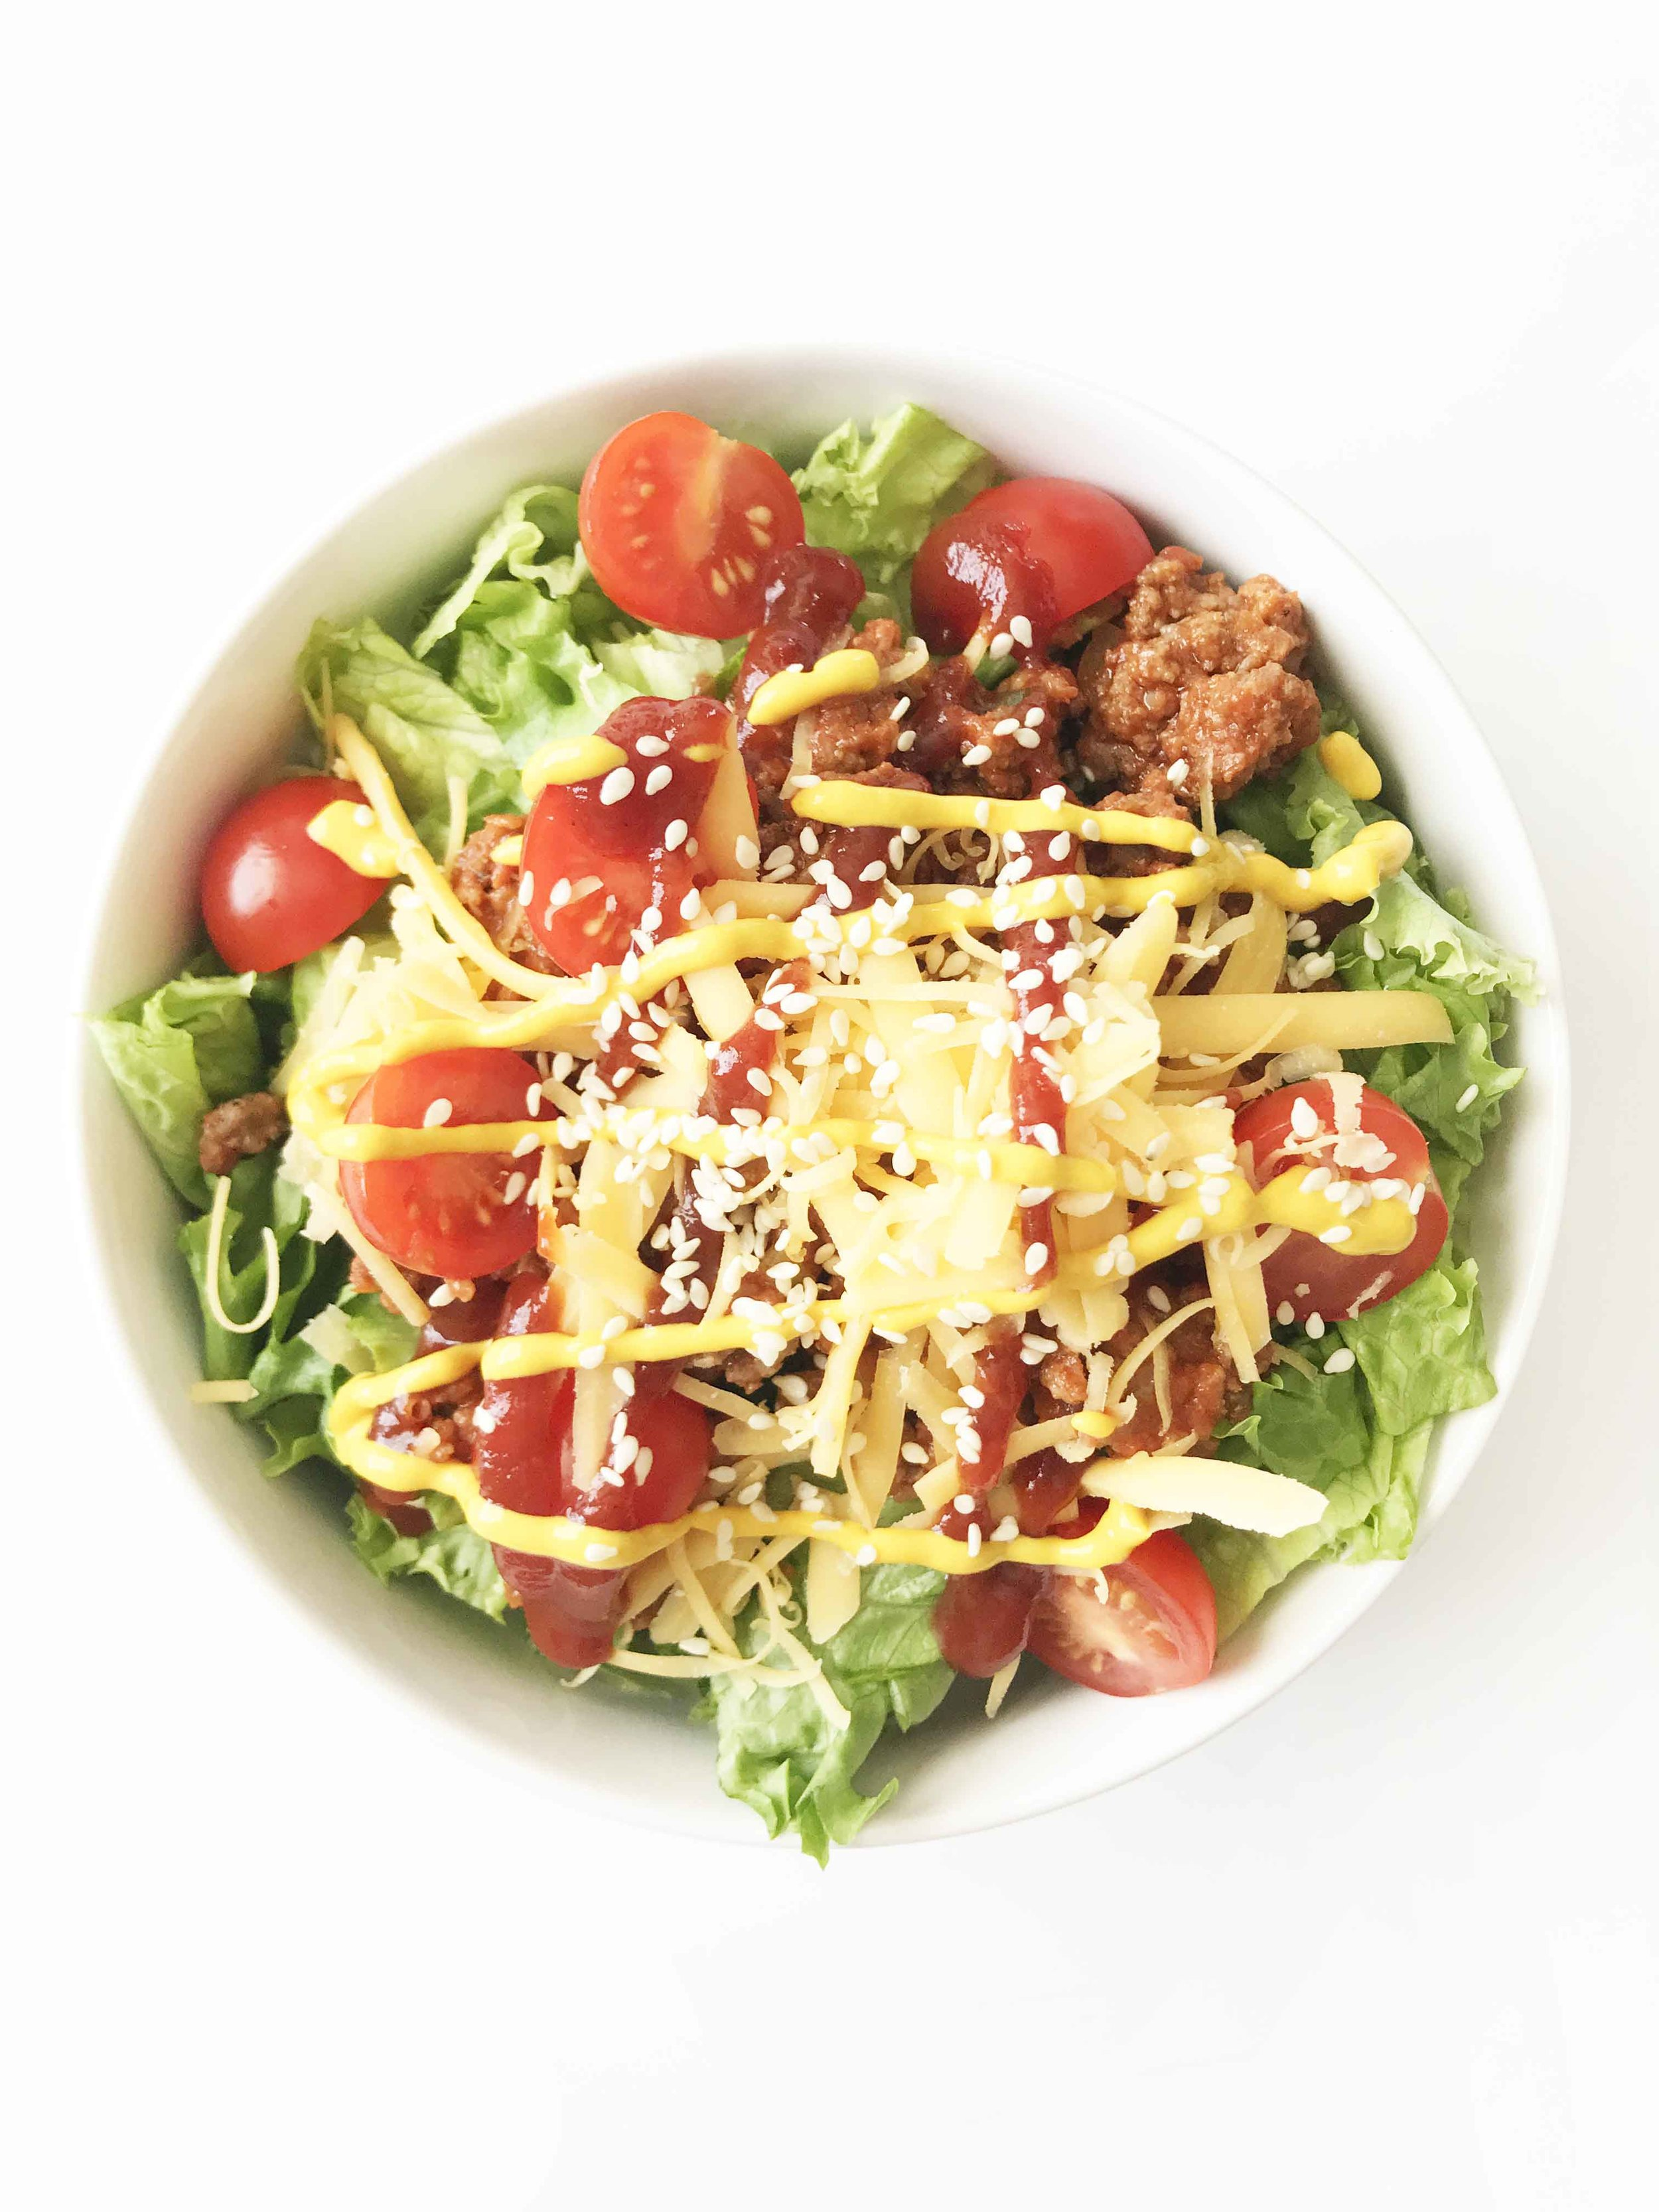 cheeseburger-salad9.jpg